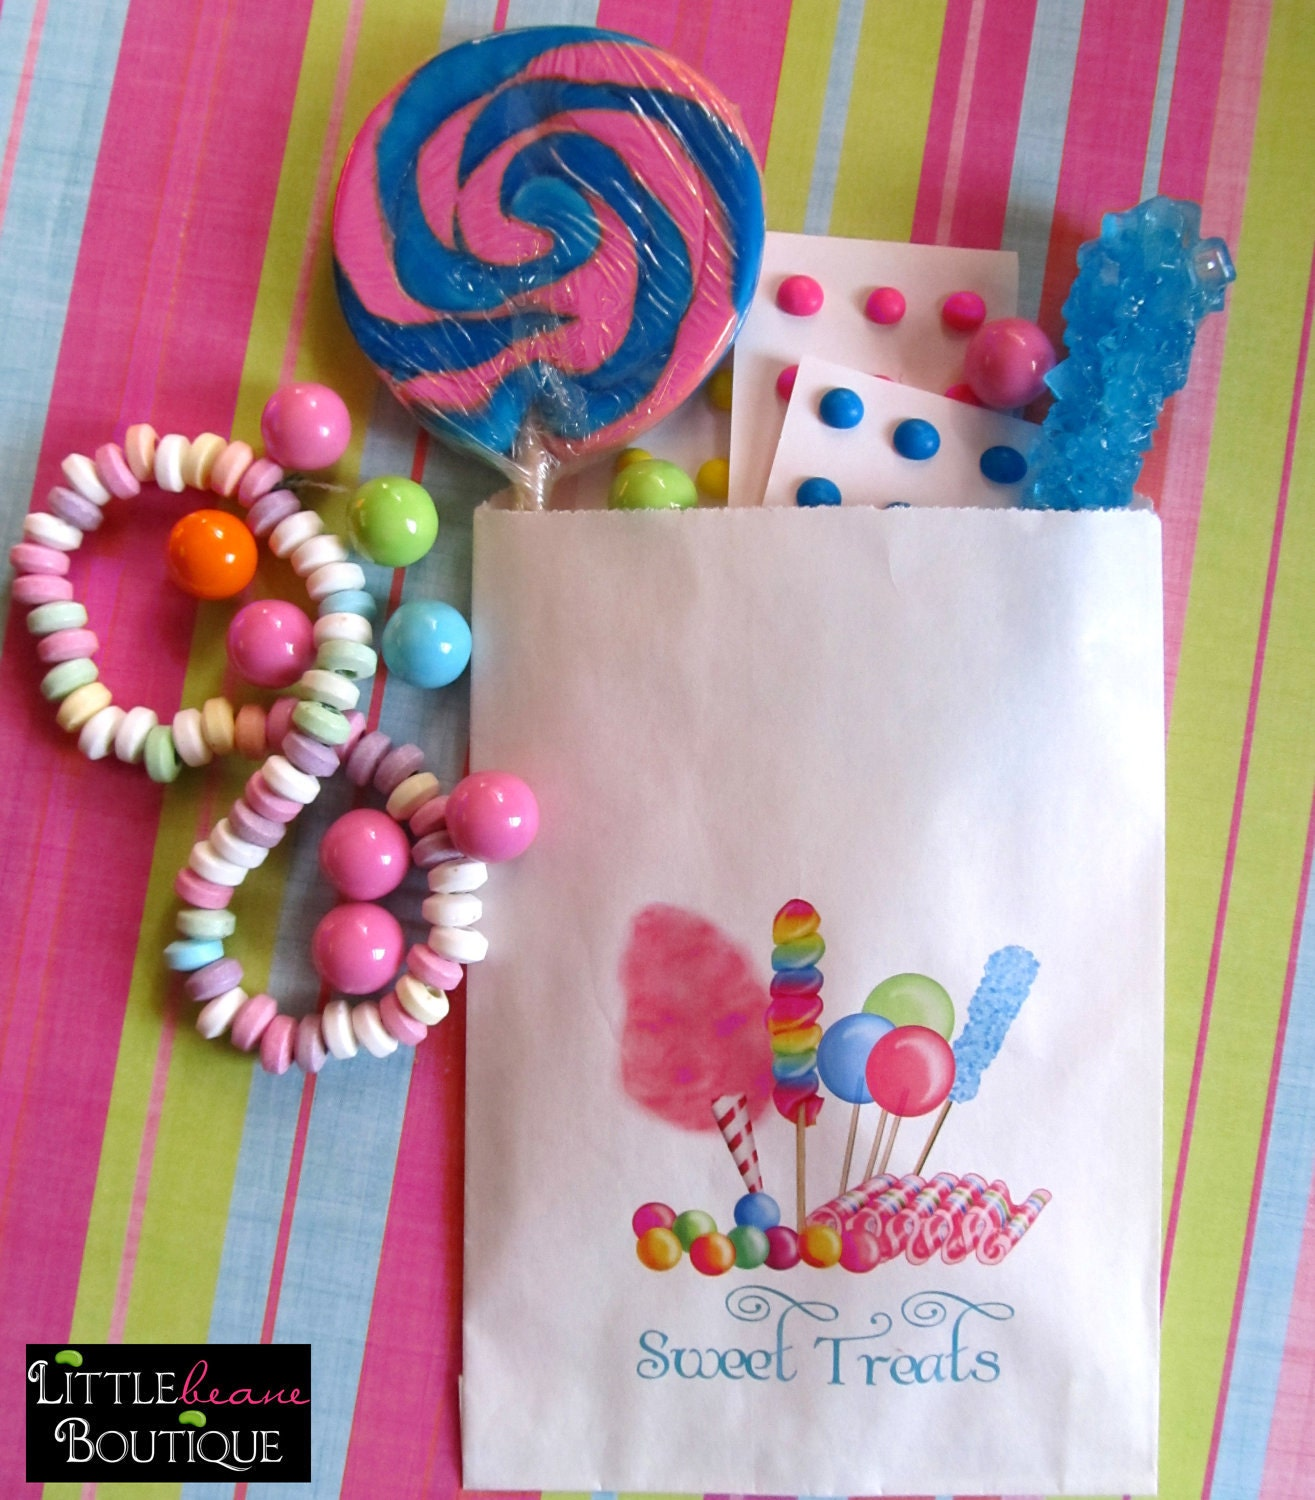 Personalized Candy Bags Favor Bags Candy By LittlebeaneBoutique